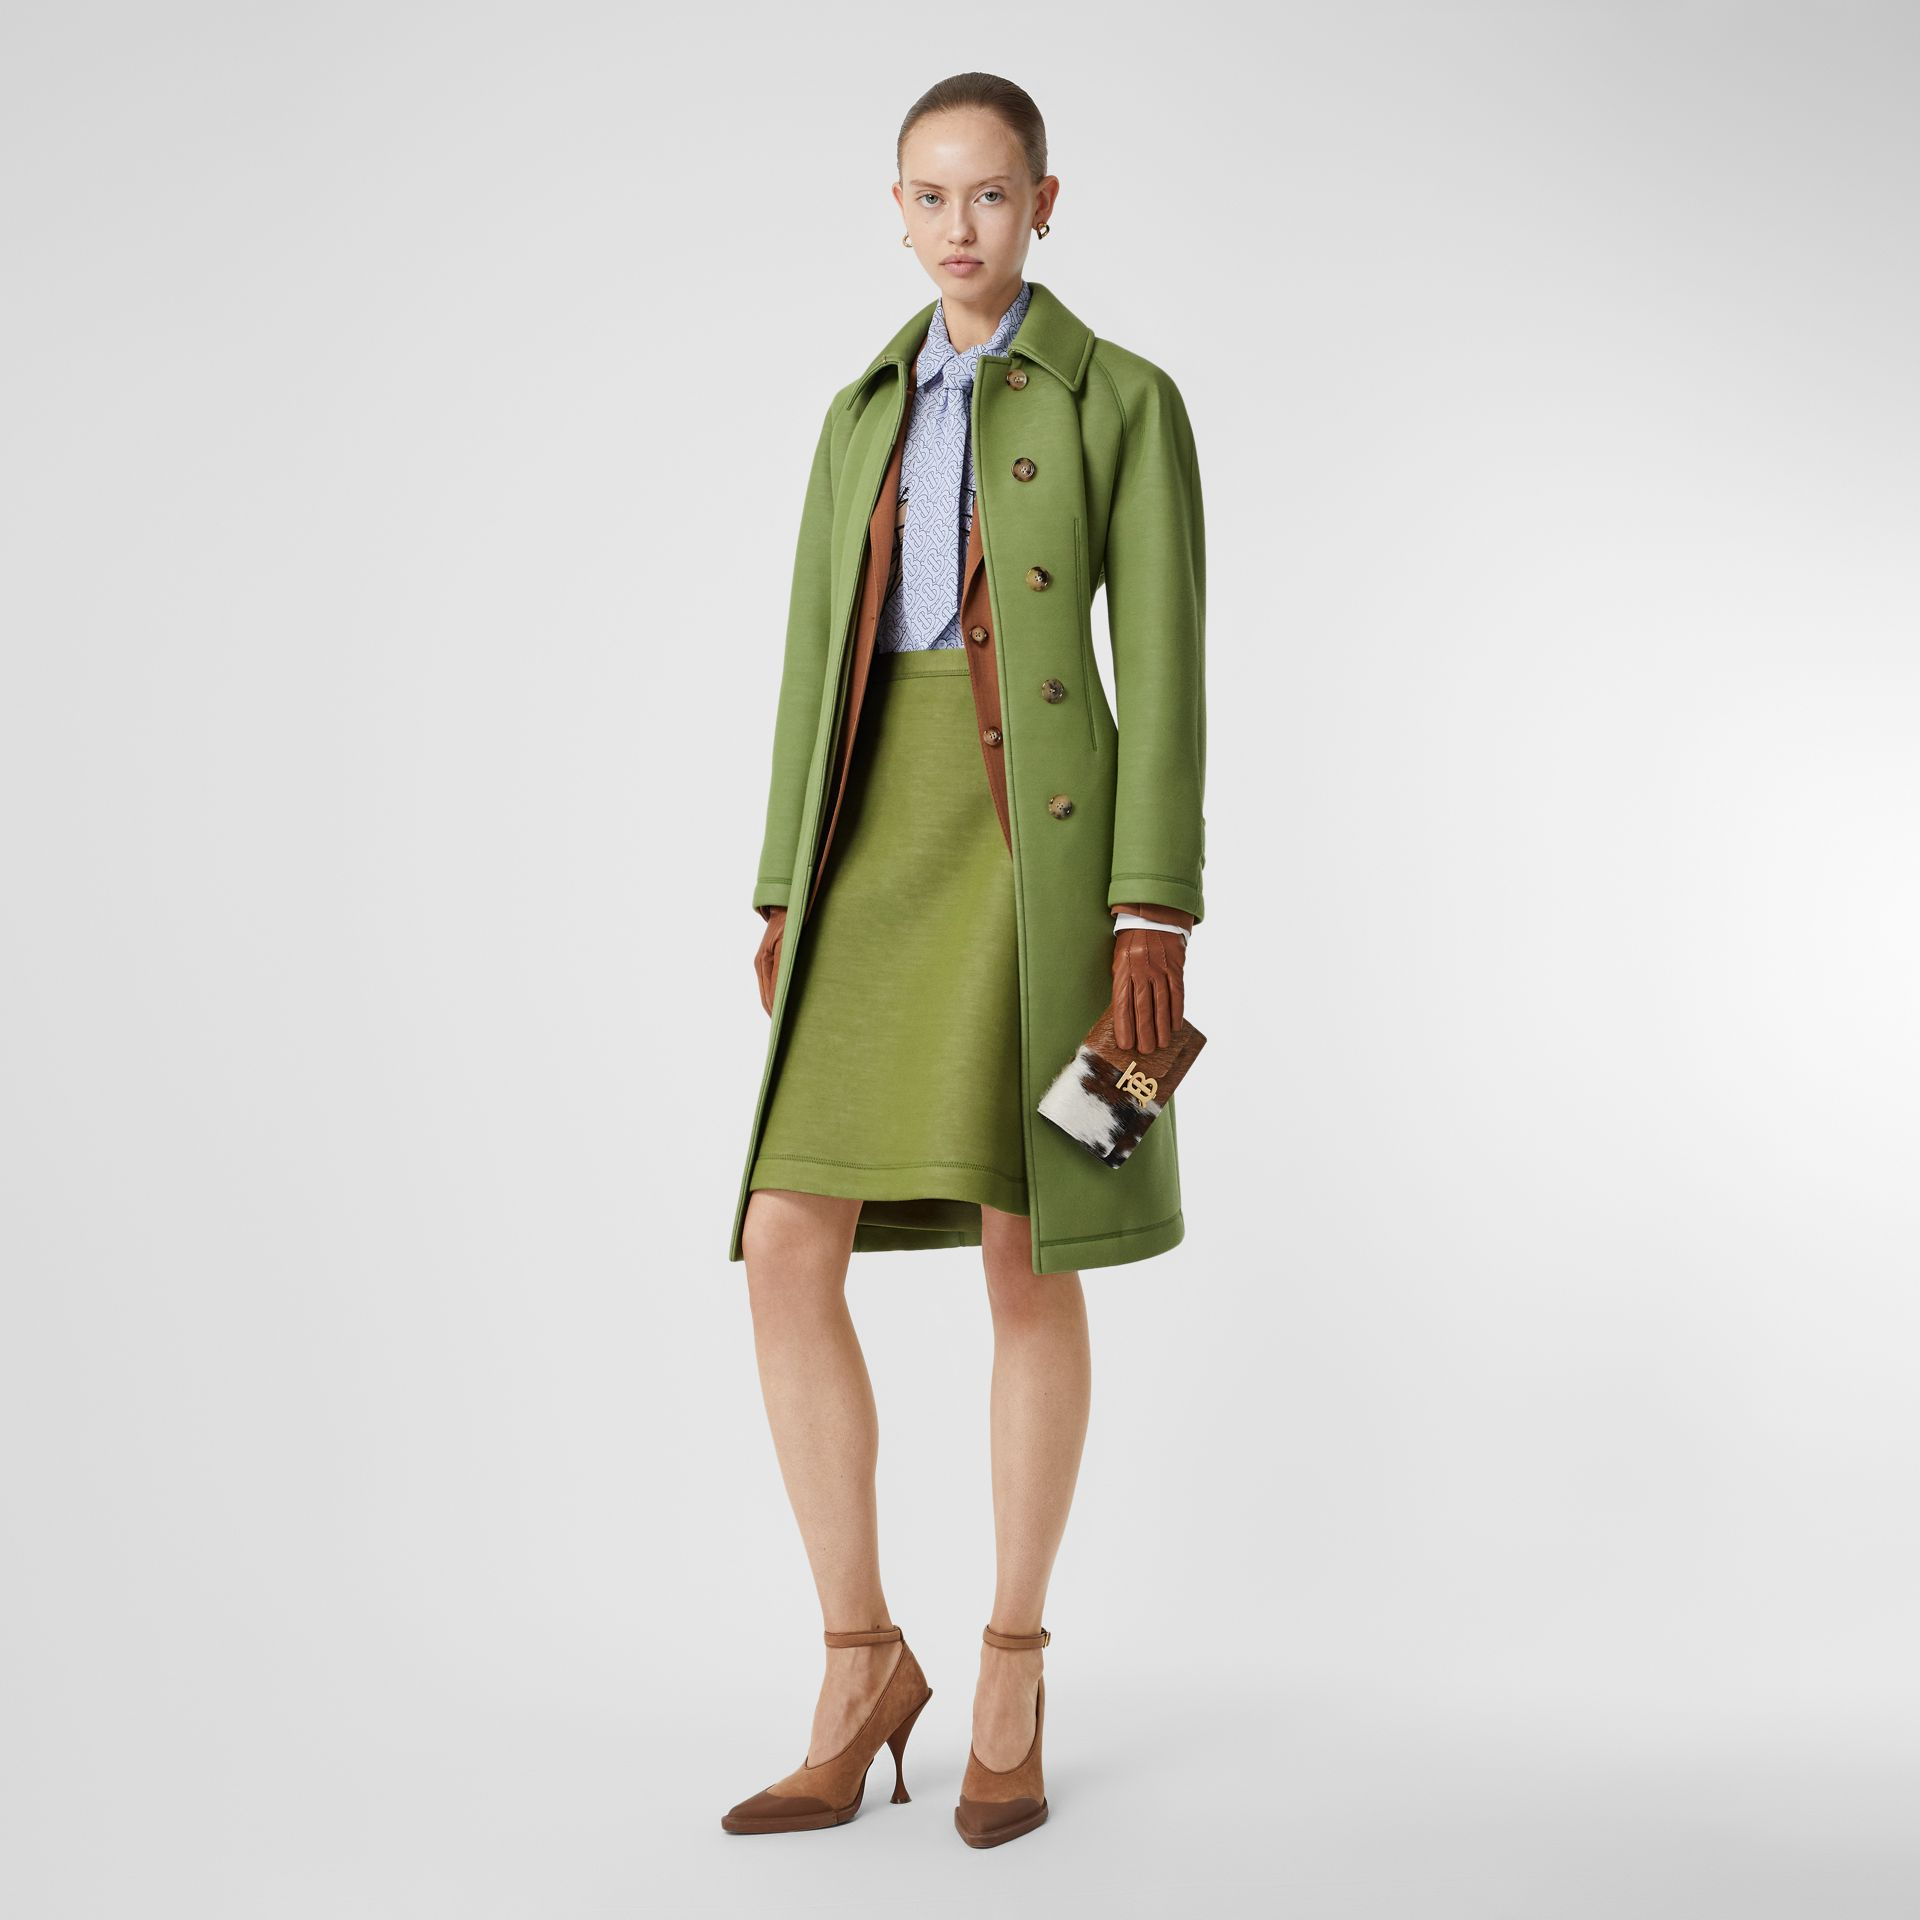 Double-faced Neoprene Skirt in Cedar Green - Women | Burberry United States - gallery image 4